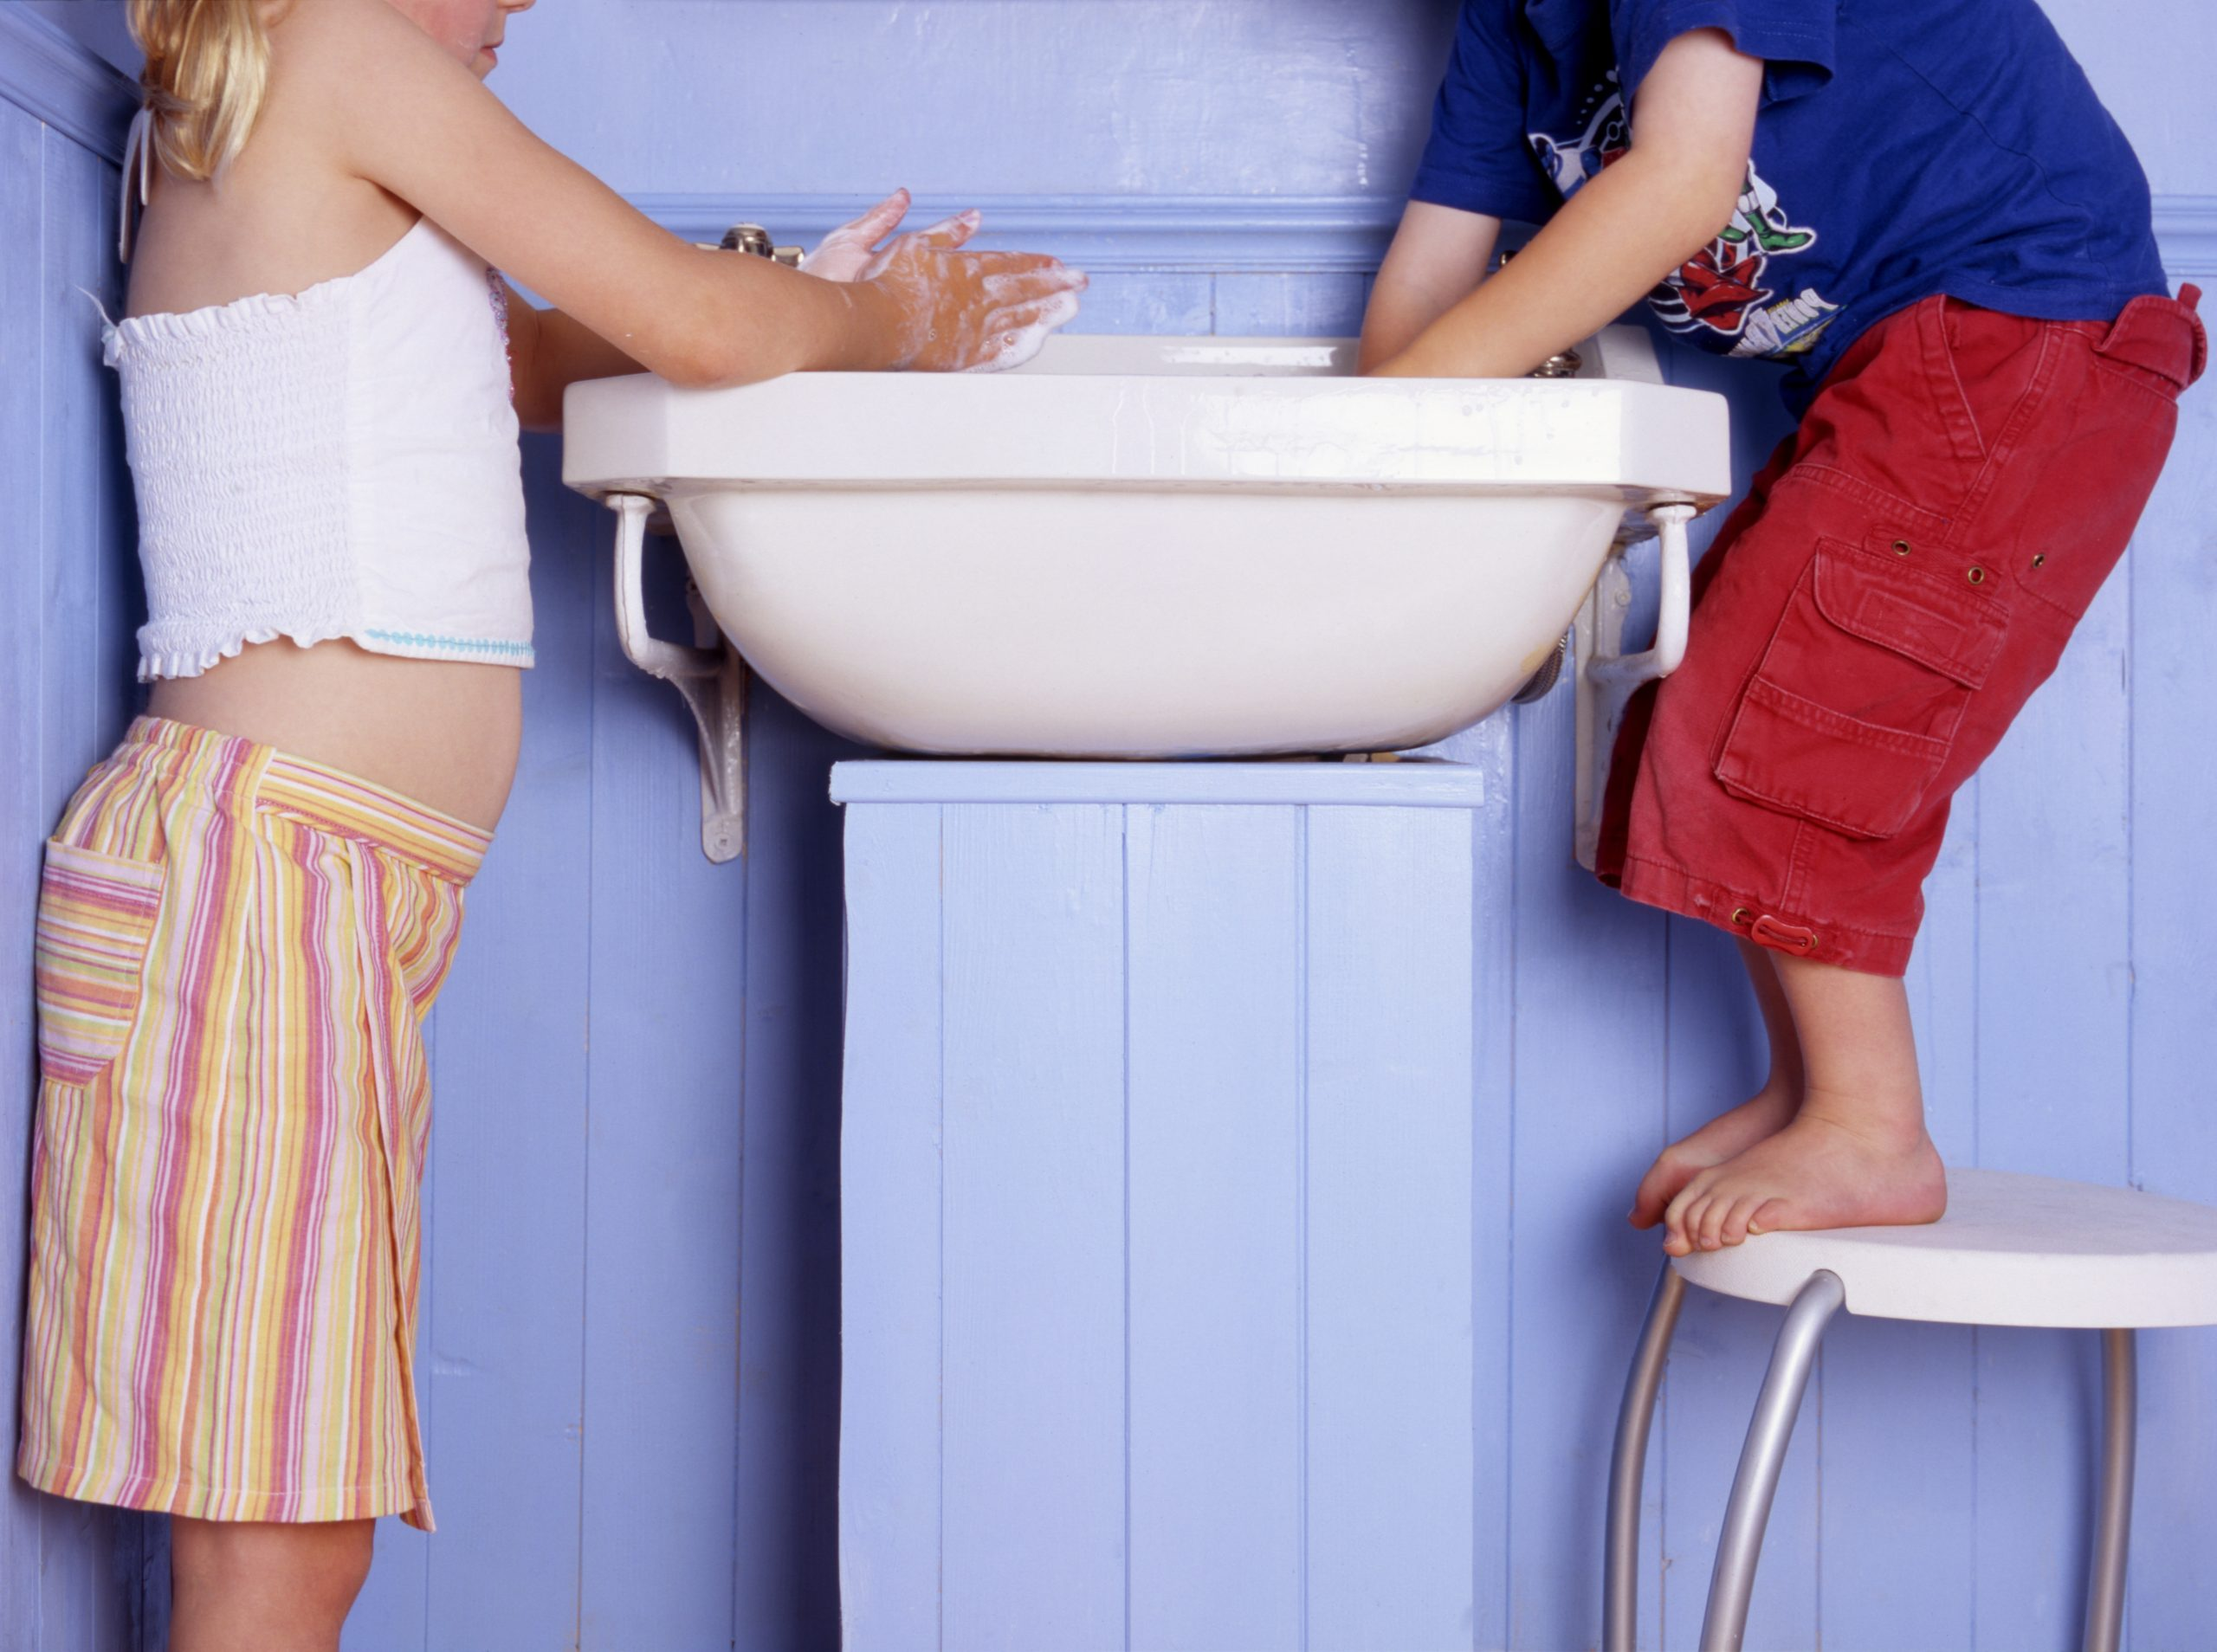 What are the OCD symptoms in children and why is lockdown causing OCD to rise? Children washing hands